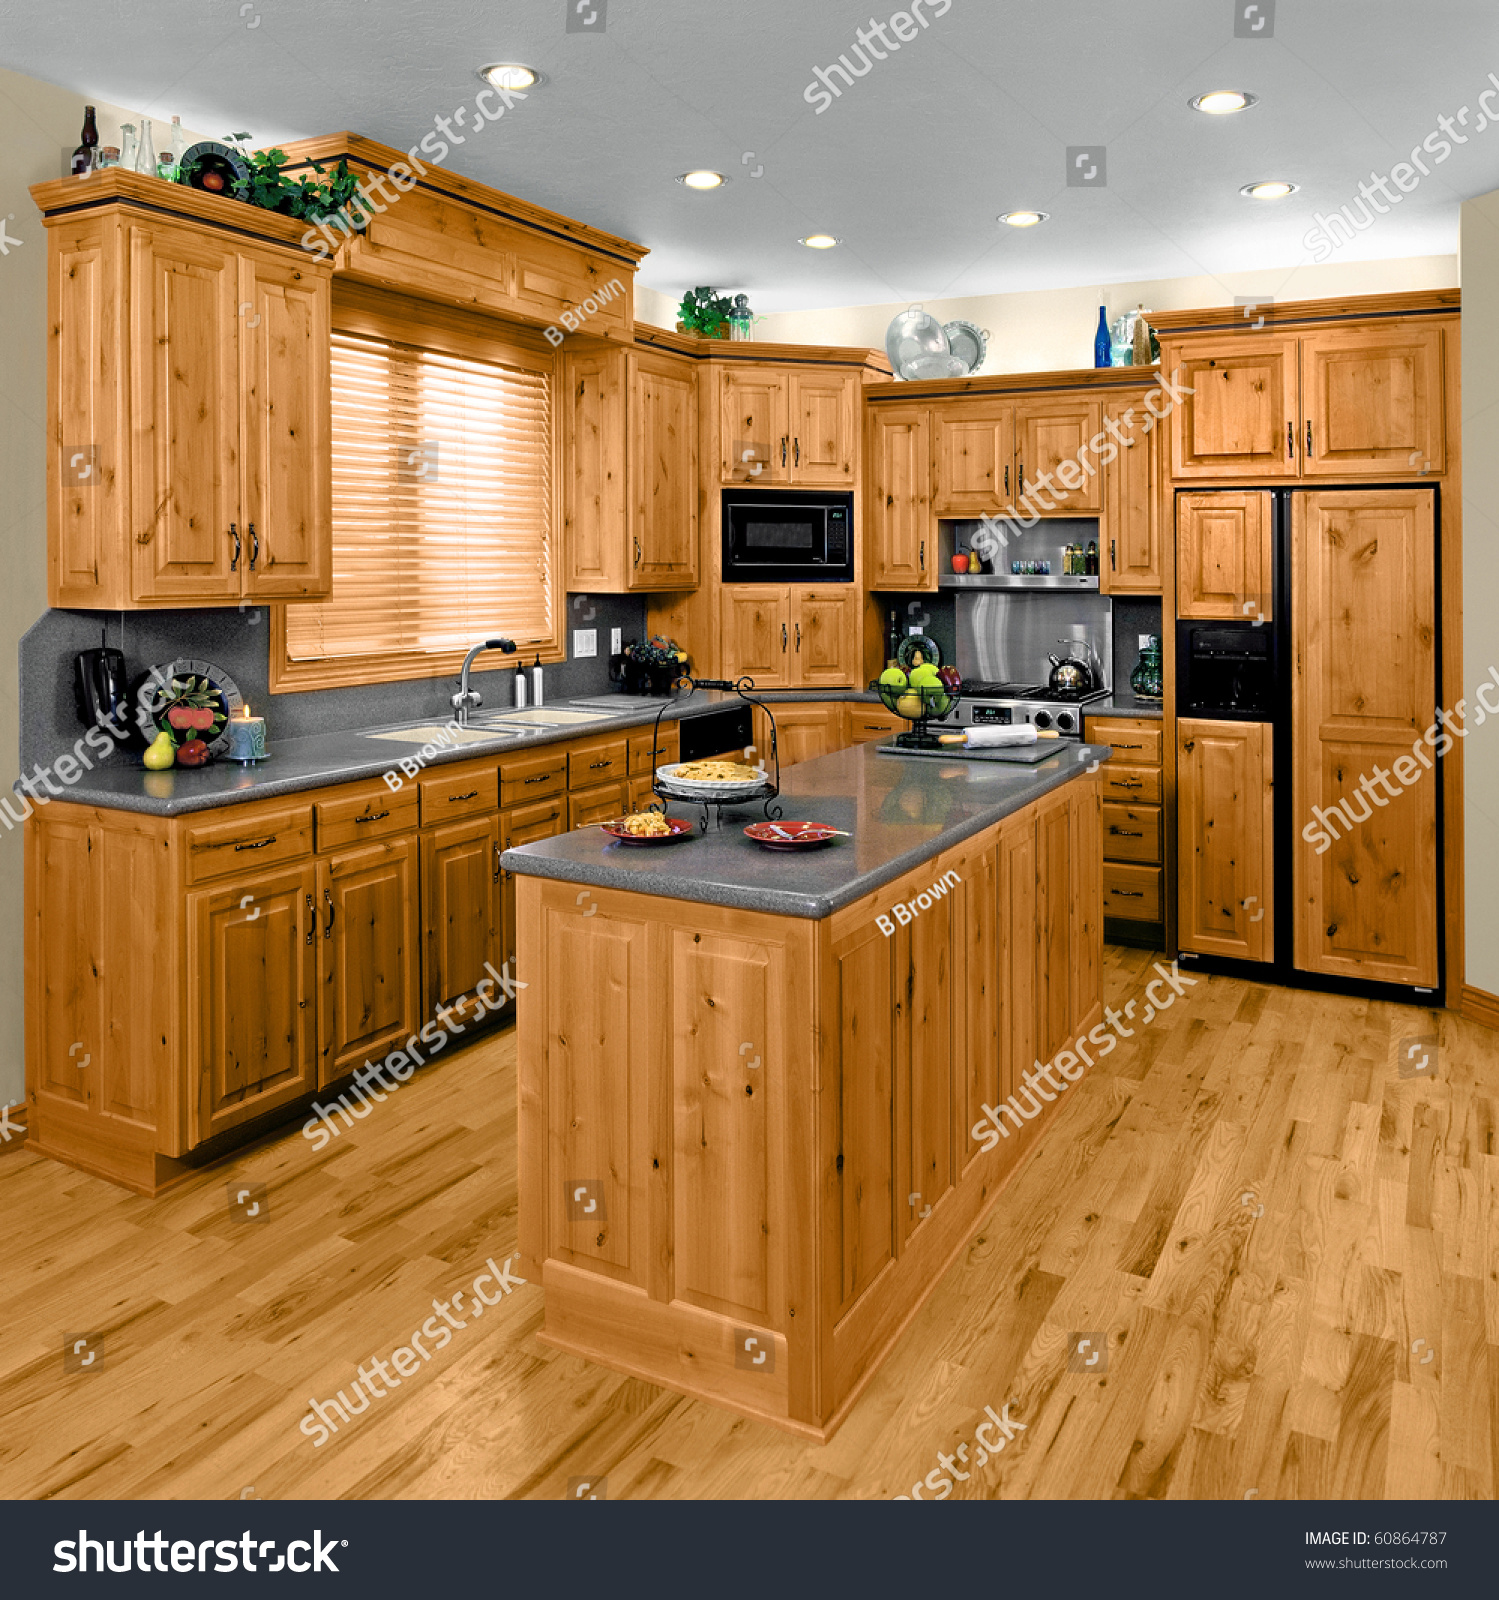 stock photo a modern residential kitchen with hickory cabinets hickory kitchen cabinets A modern residential kitchen with hickory cabinets